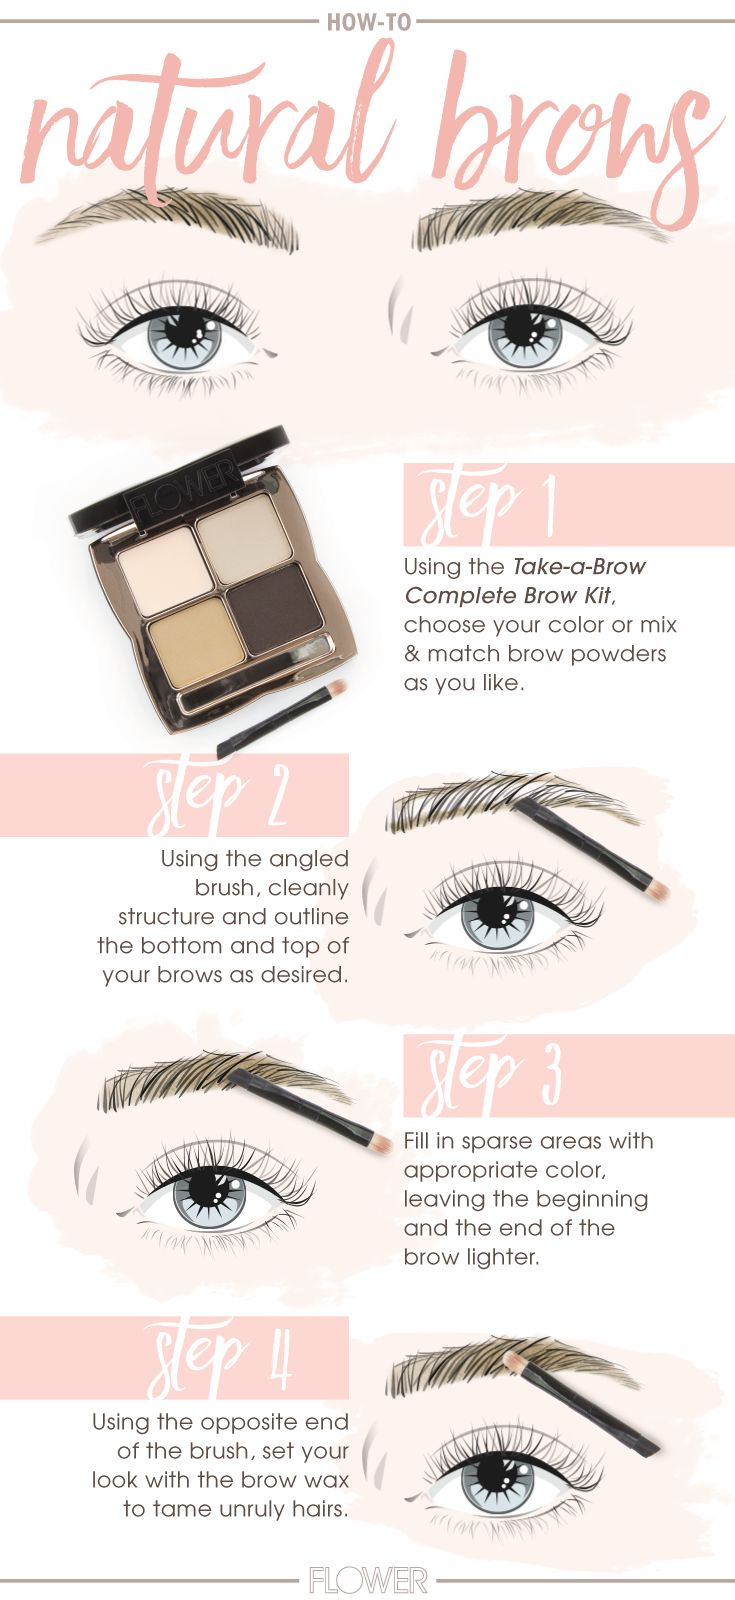 Sculpt Define And Fill In Sparse Areas With One Flowerbeauty